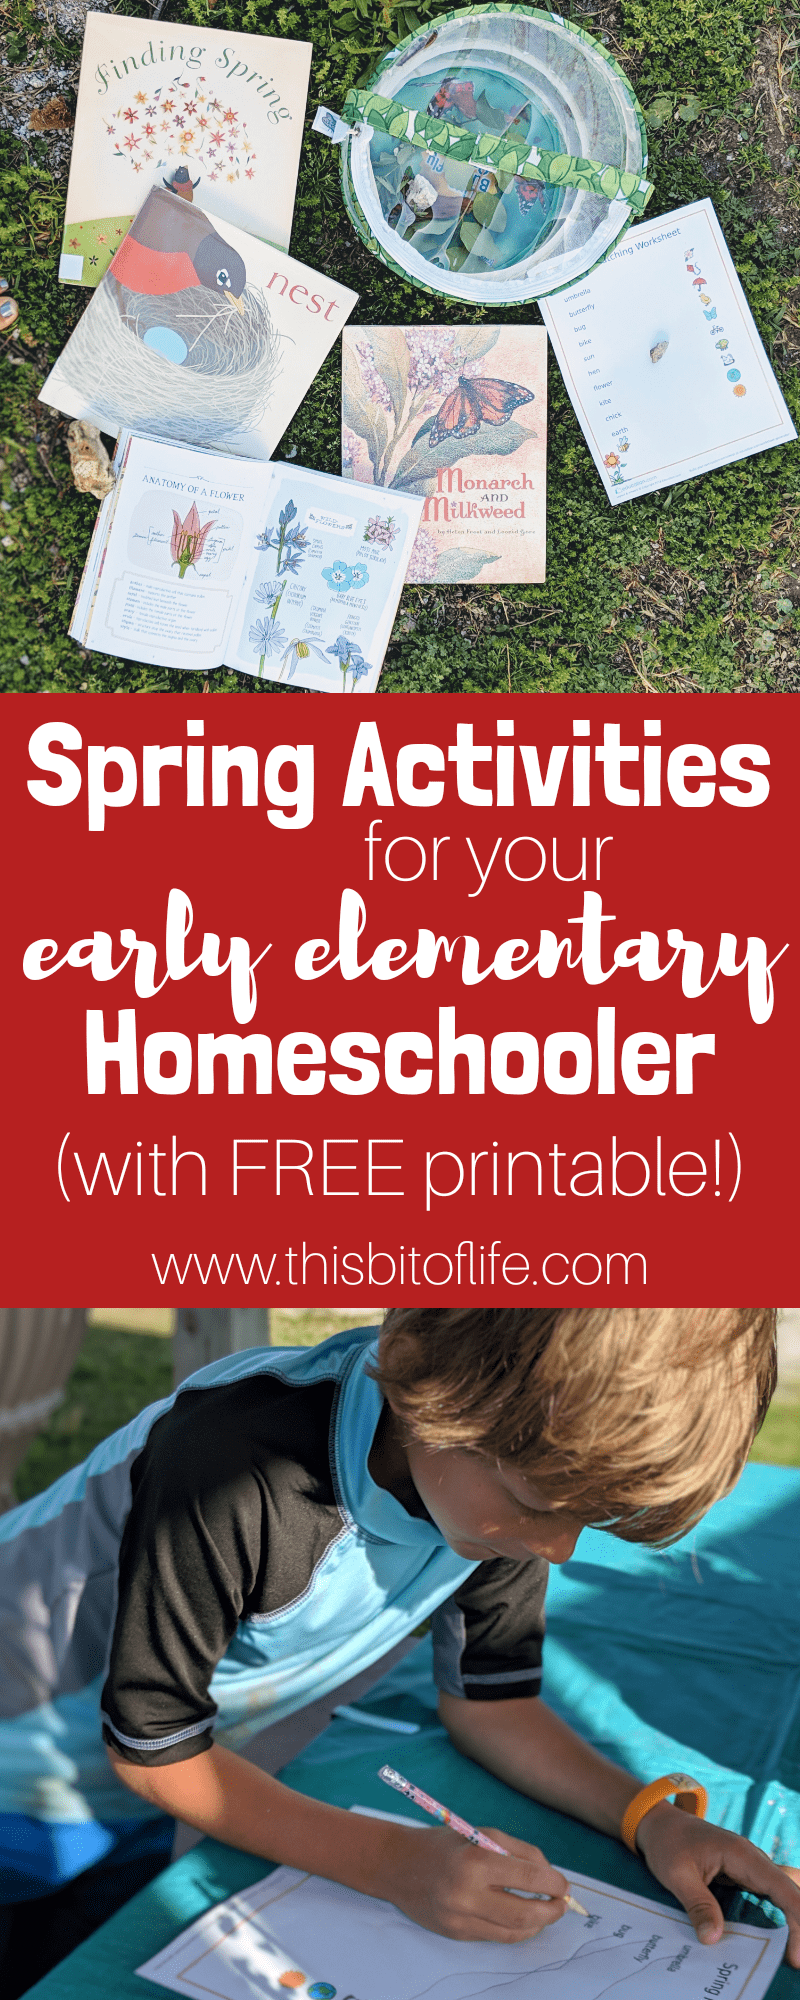 Spring has sprung! Here are some spring activities for your early elementary homeschooler. Spring books, butterfly observation, flower identification, and a FREE printable! #freeprintable #sprintactivities #homeschooling #springhomeschooleractivities